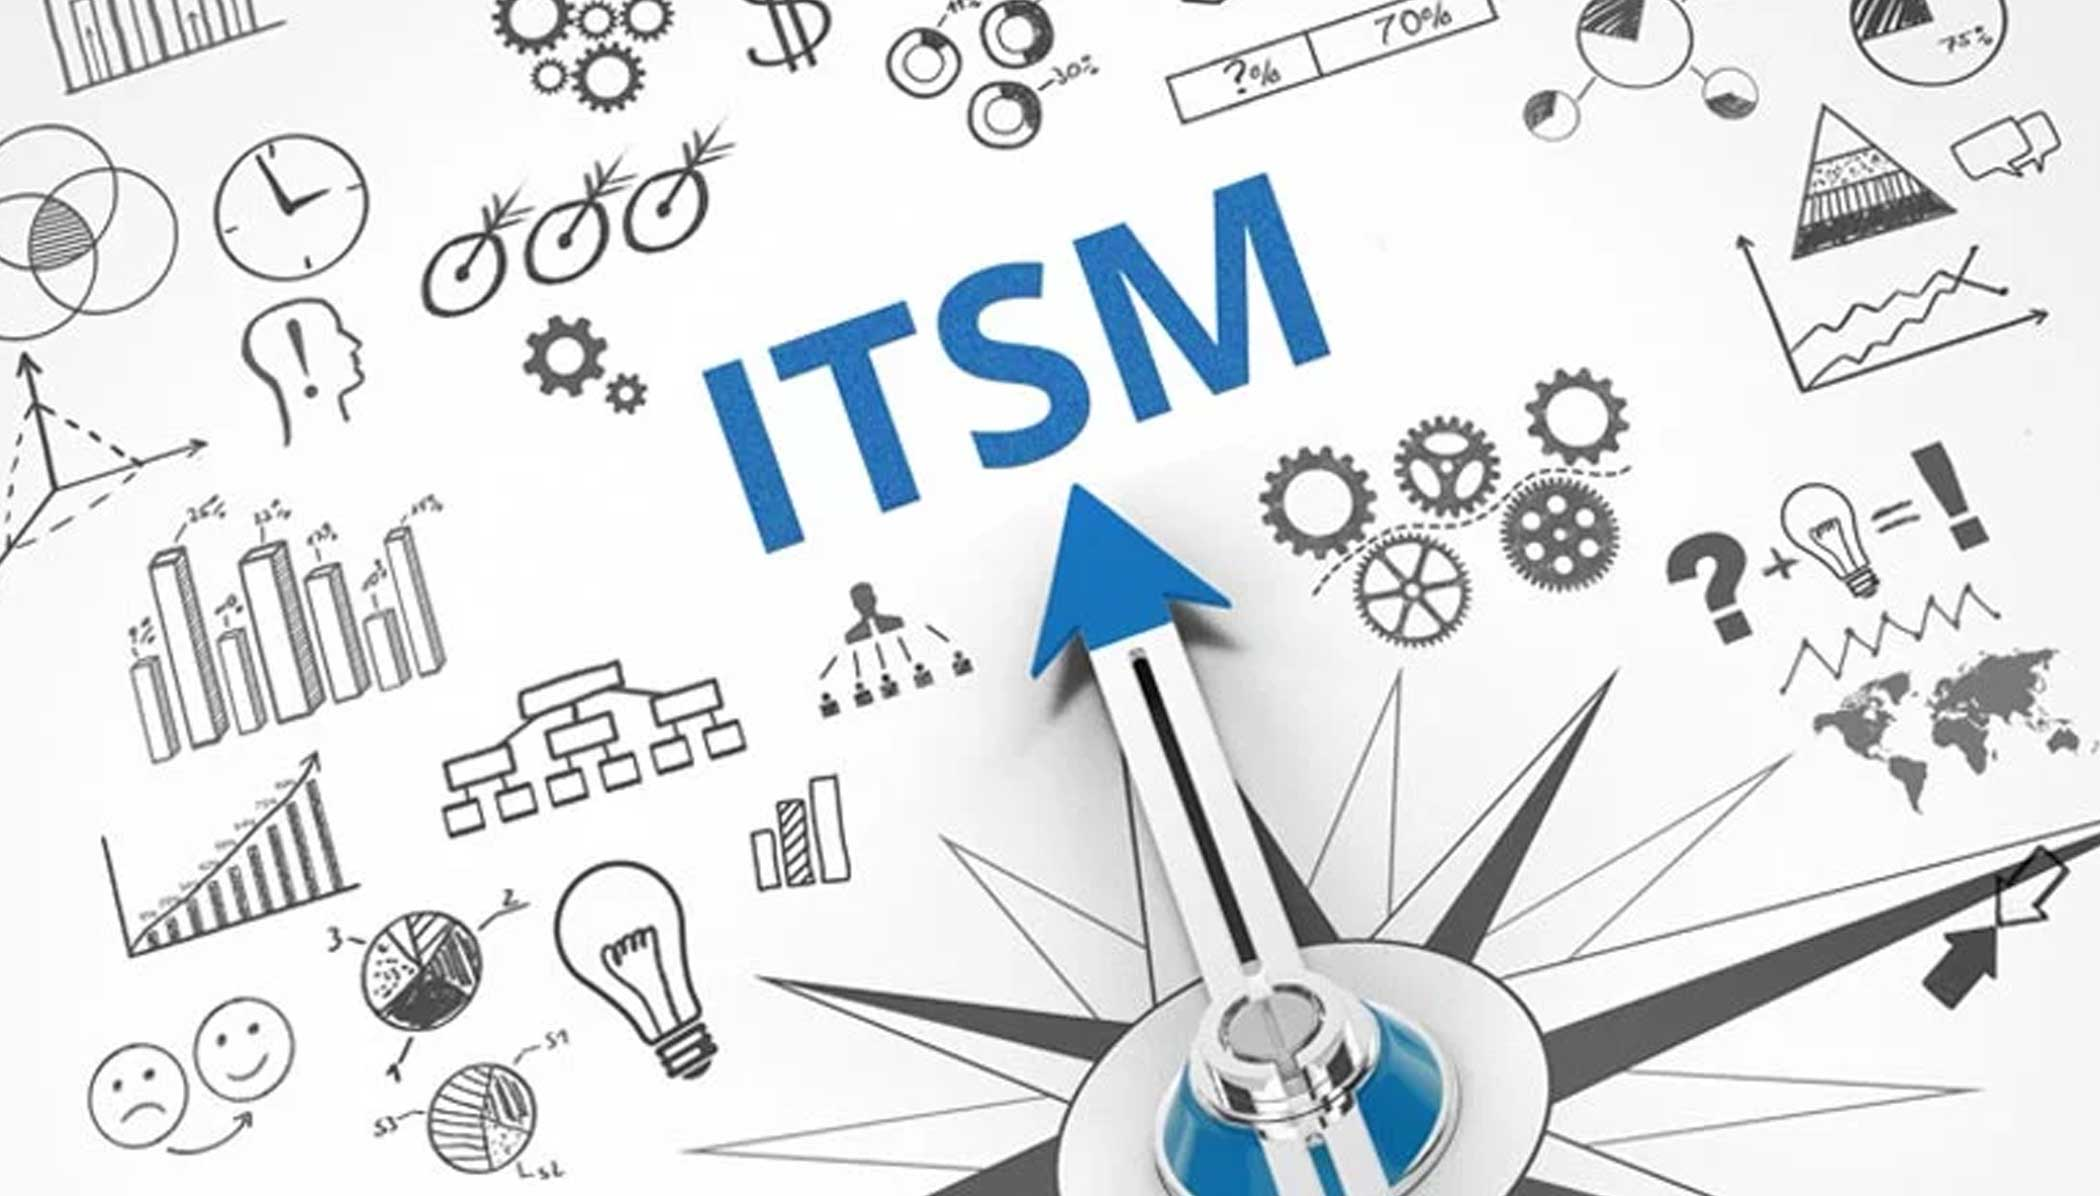 Modernizing ITSM Improves Service